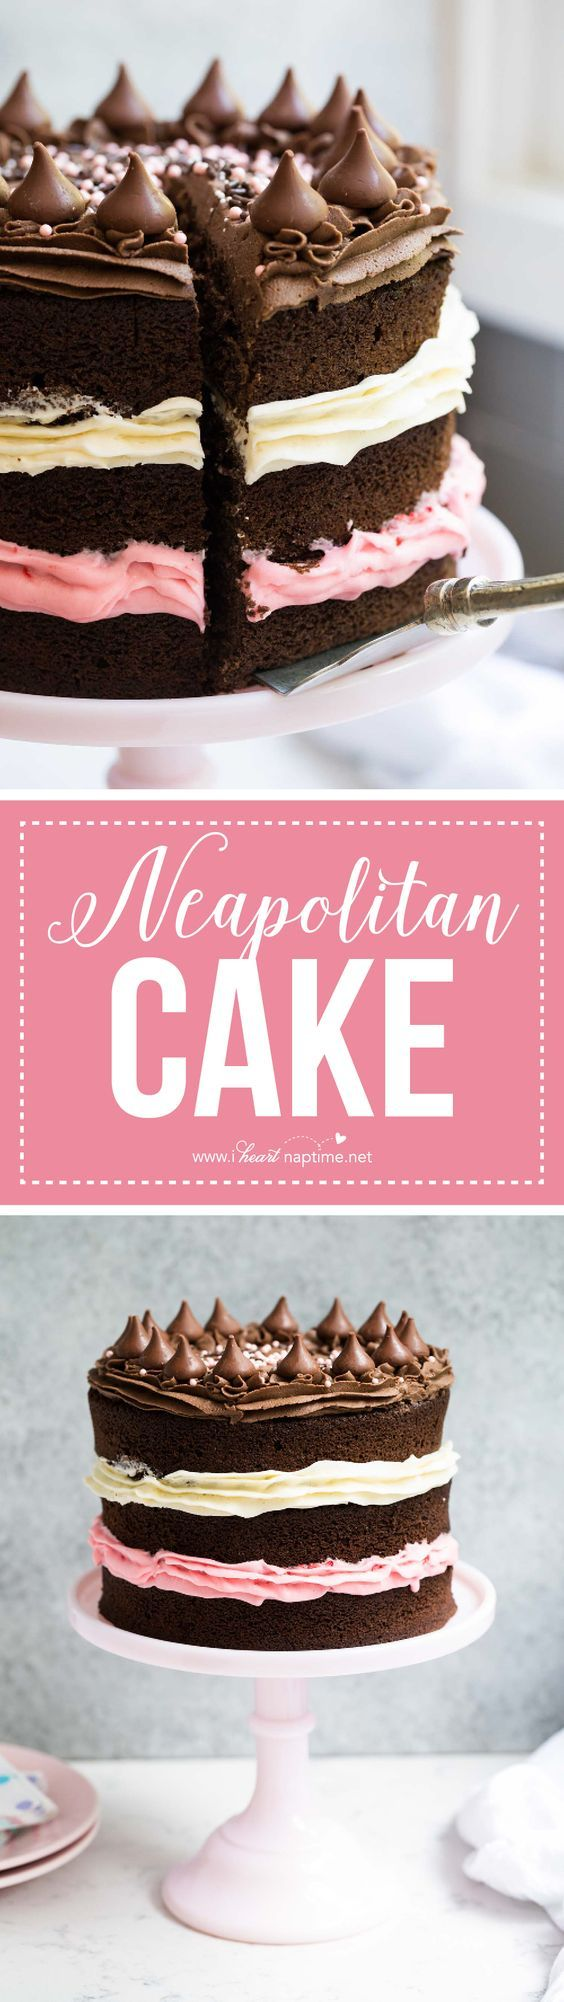 Neapolitan Cake with layers of chocolate, vanilla and strawberry buttercream frosting. A classic ice cream flavor turned into a delicious cake!